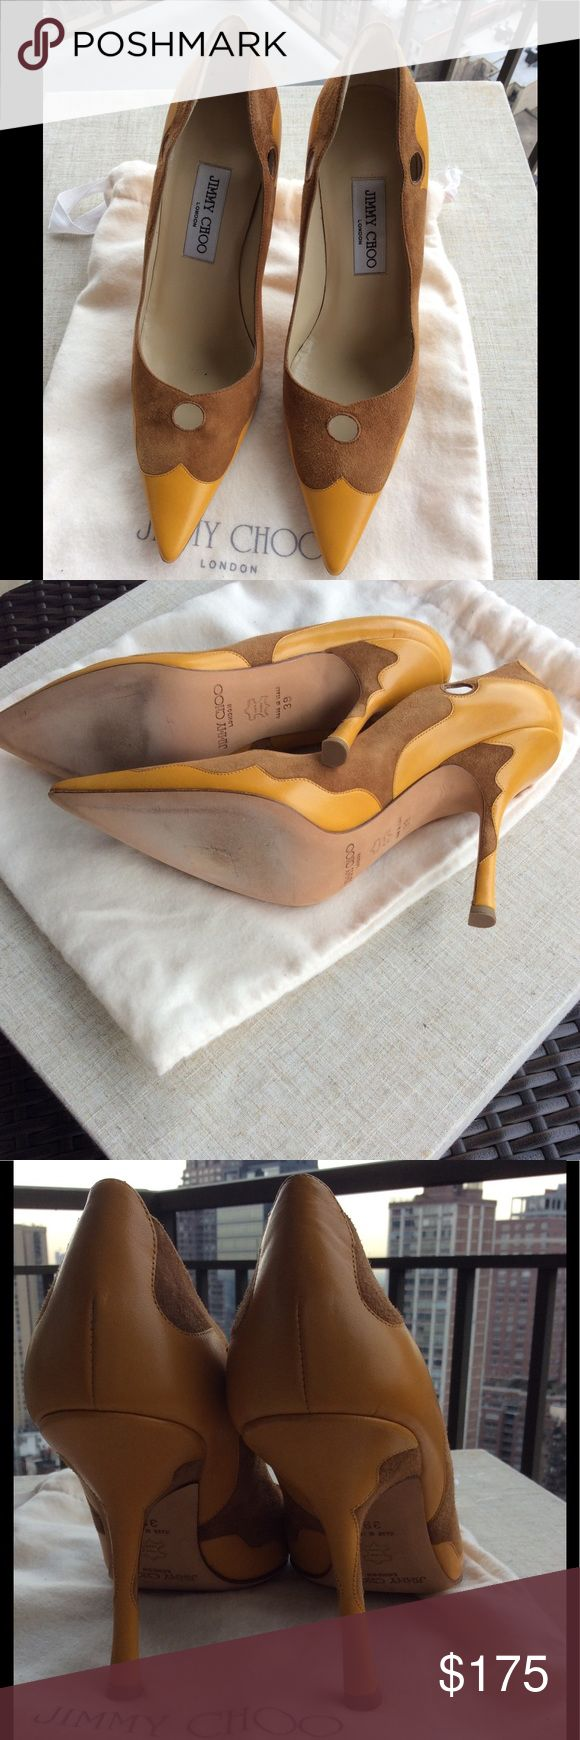 Beautiful Jimmy Choo 4 inches heel New, never worn. Suede and leather in different tones.With bag. Jimmy Choo Shoes Heels